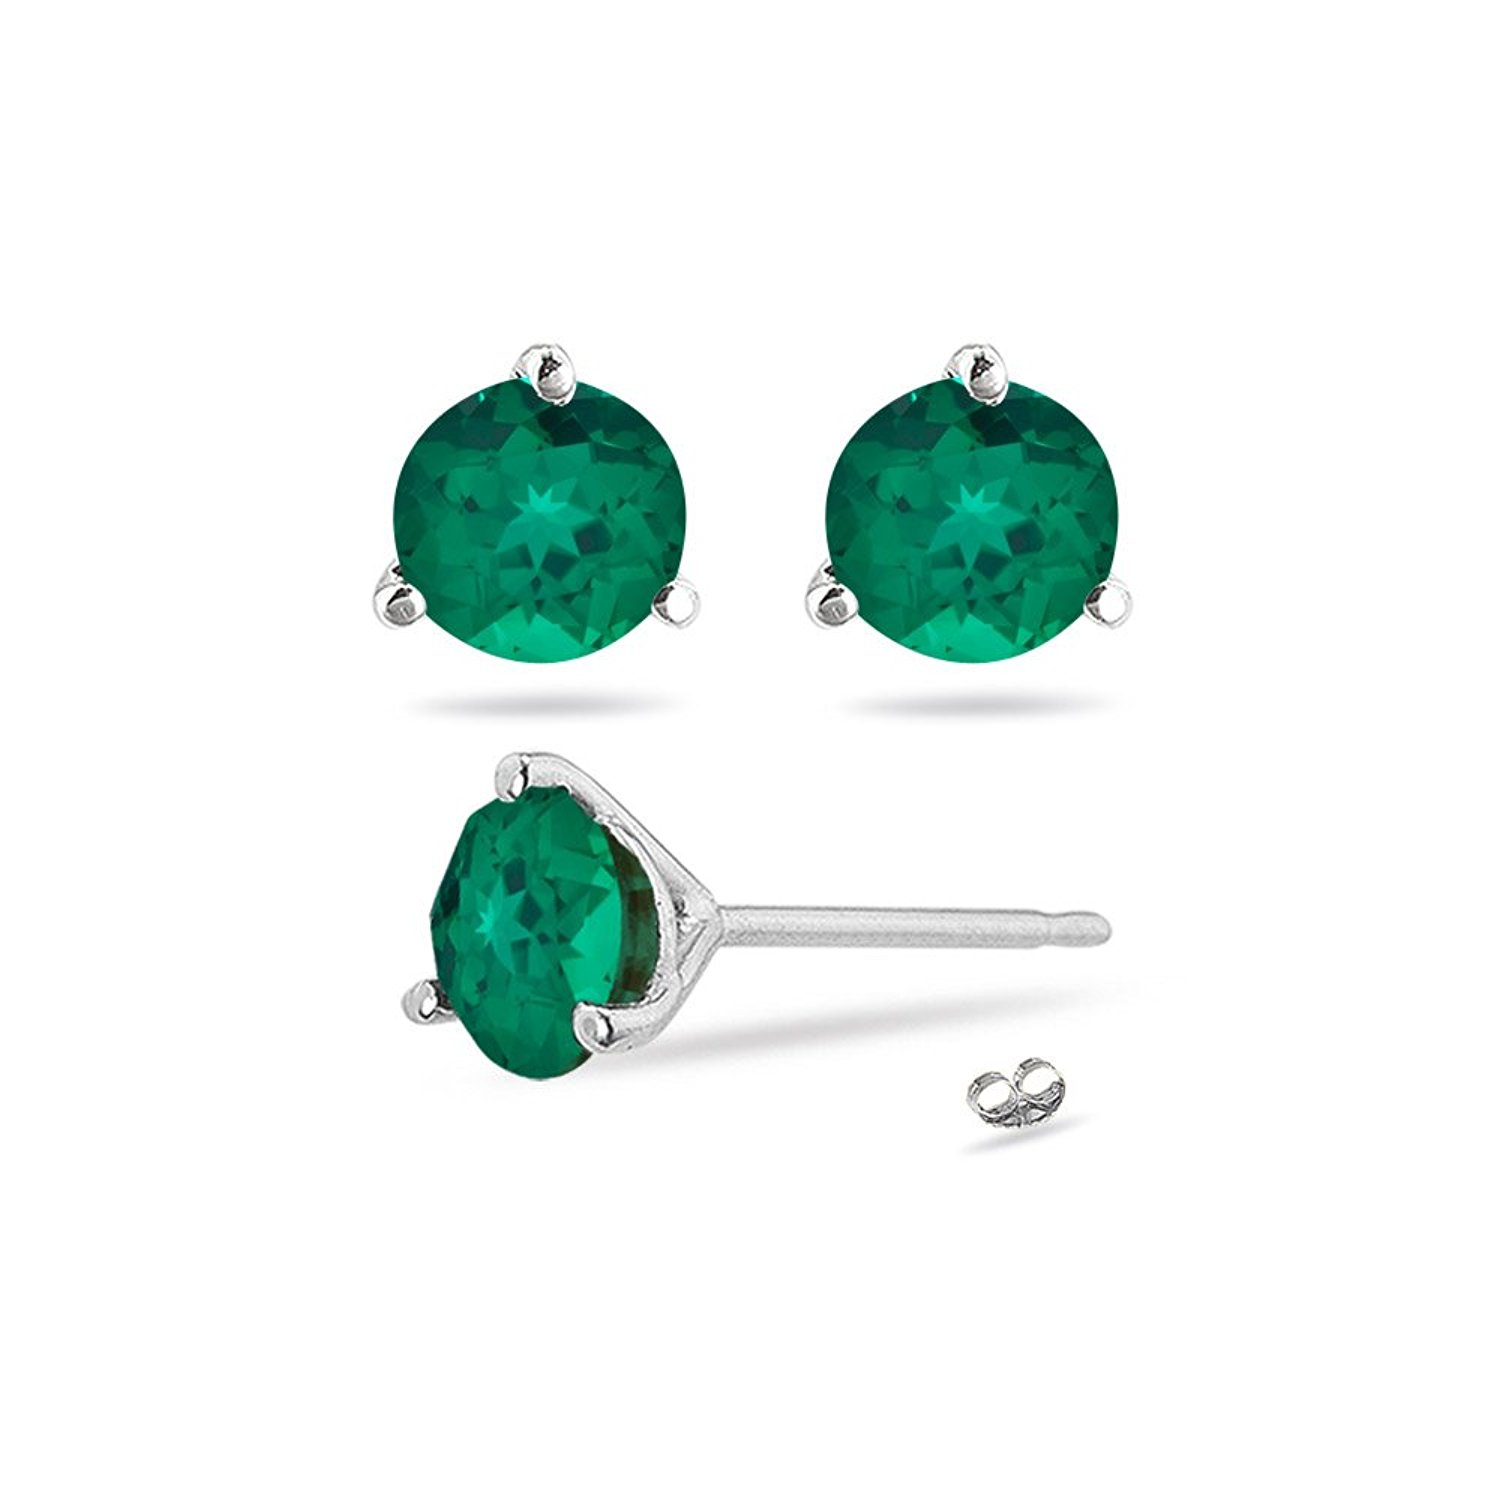 7ad62b831 Get Quotations · 0.47-0.51 Cts of 4 mm AAA Round Russian Lab Created  Emerald Martini-set